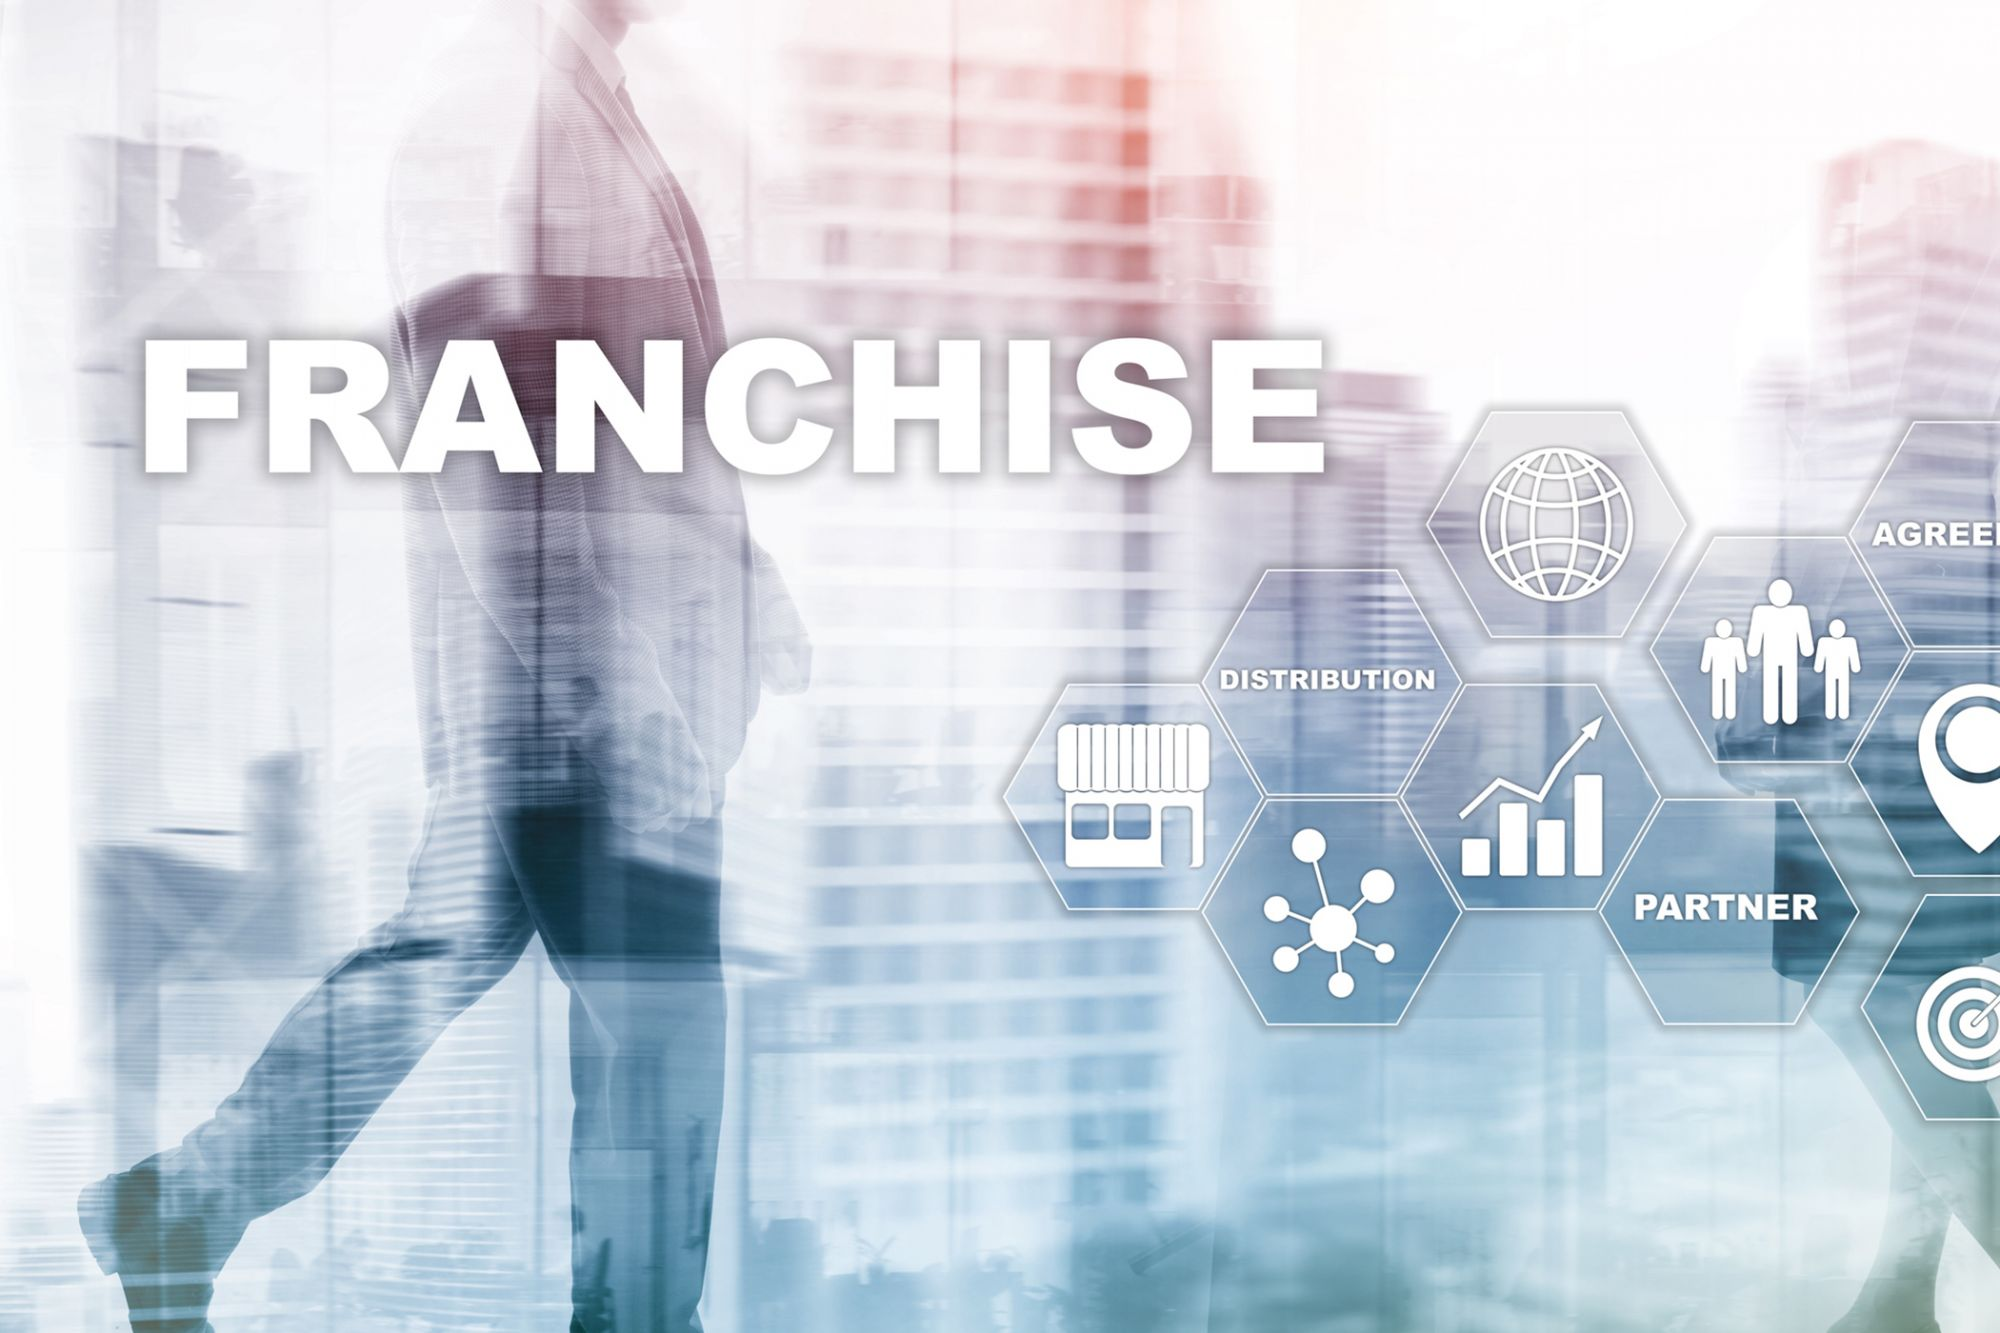 5 Things Franchise Owners Should Know About the New Department of Labor Rule on 'Joint Employment'